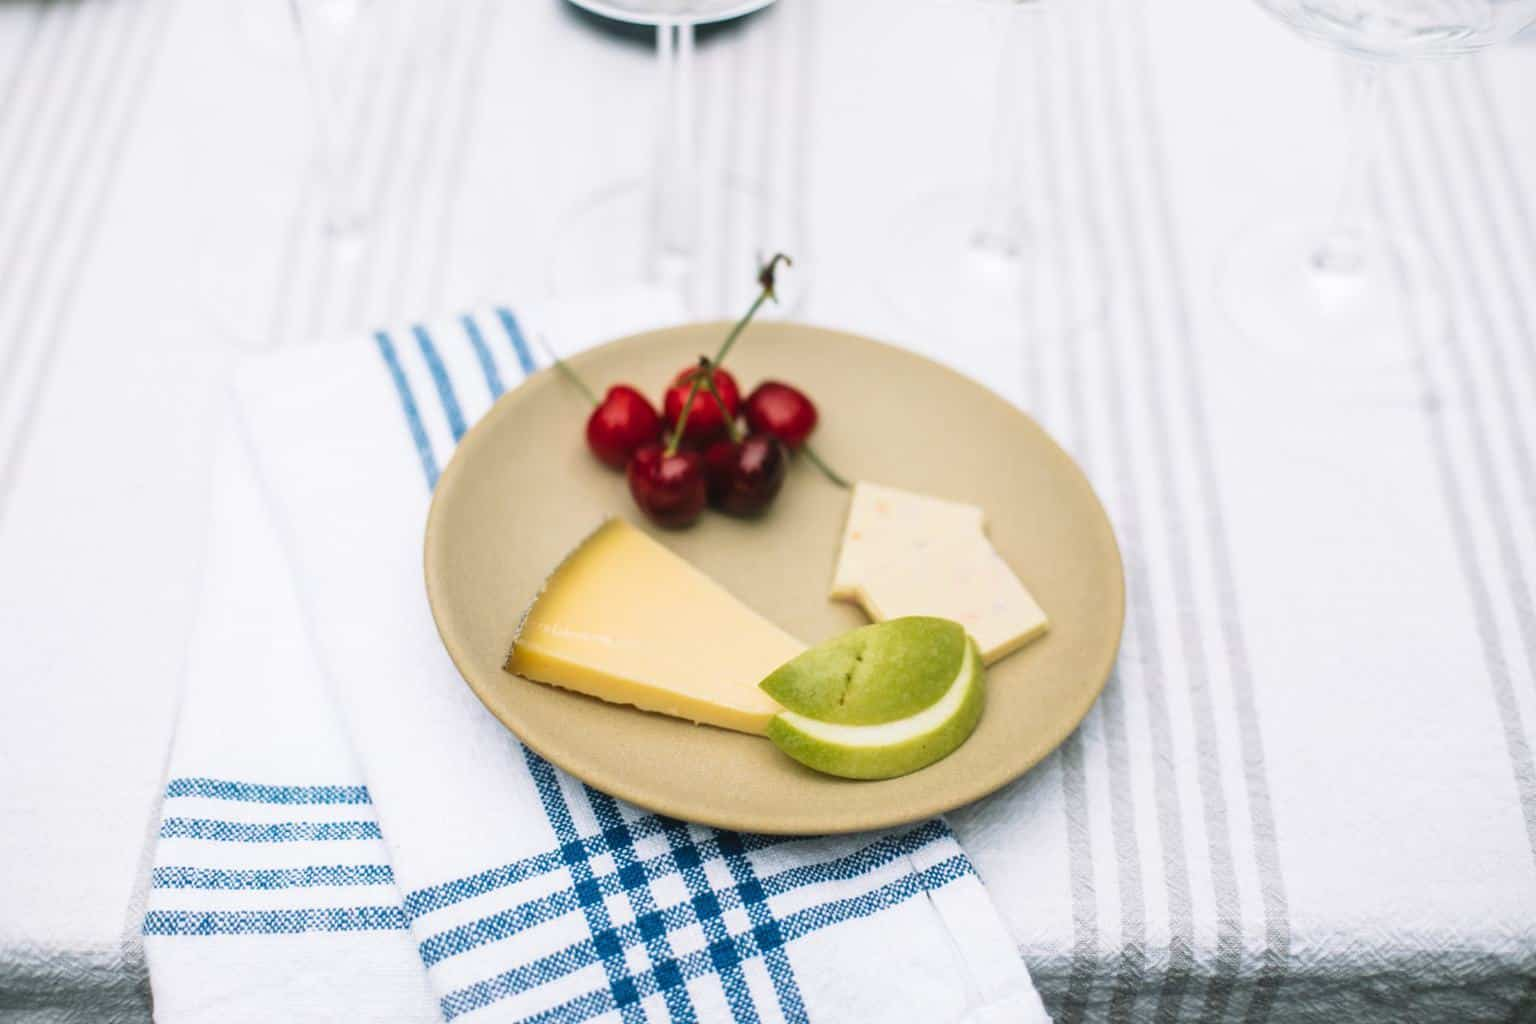 A small tan, ceramic tasting plate with cherries, cheese, apples and white chocolate.